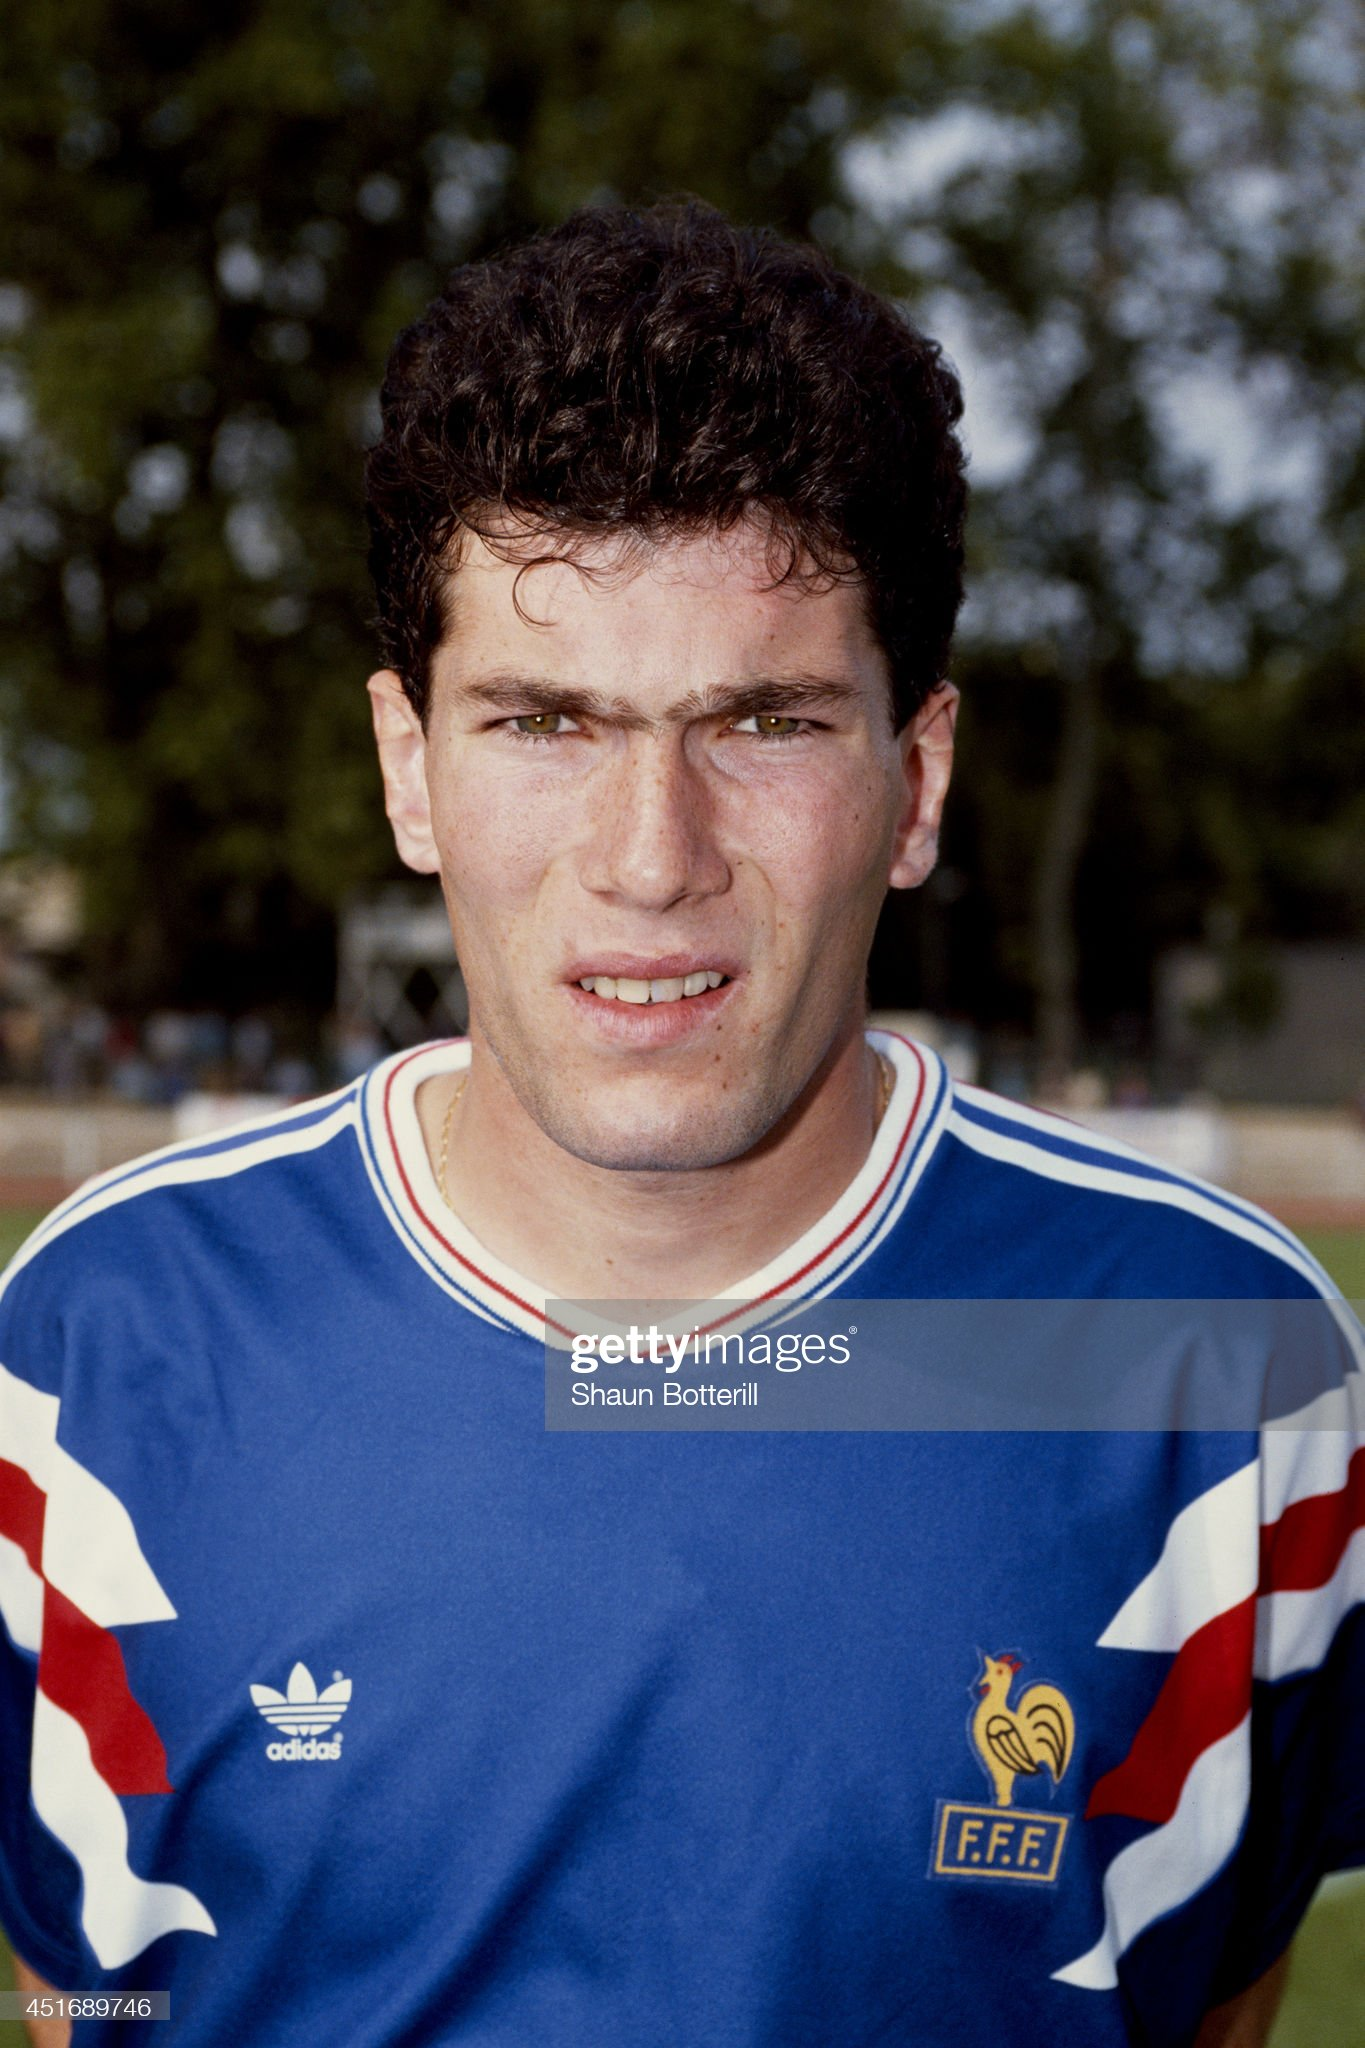 Ojos verdes - Famosas y famosos con los ojos de color VERDE France-player-zinedine-zidane-poses-for-a-picture-before-an-under21-picture-id451689746?s=2048x2048